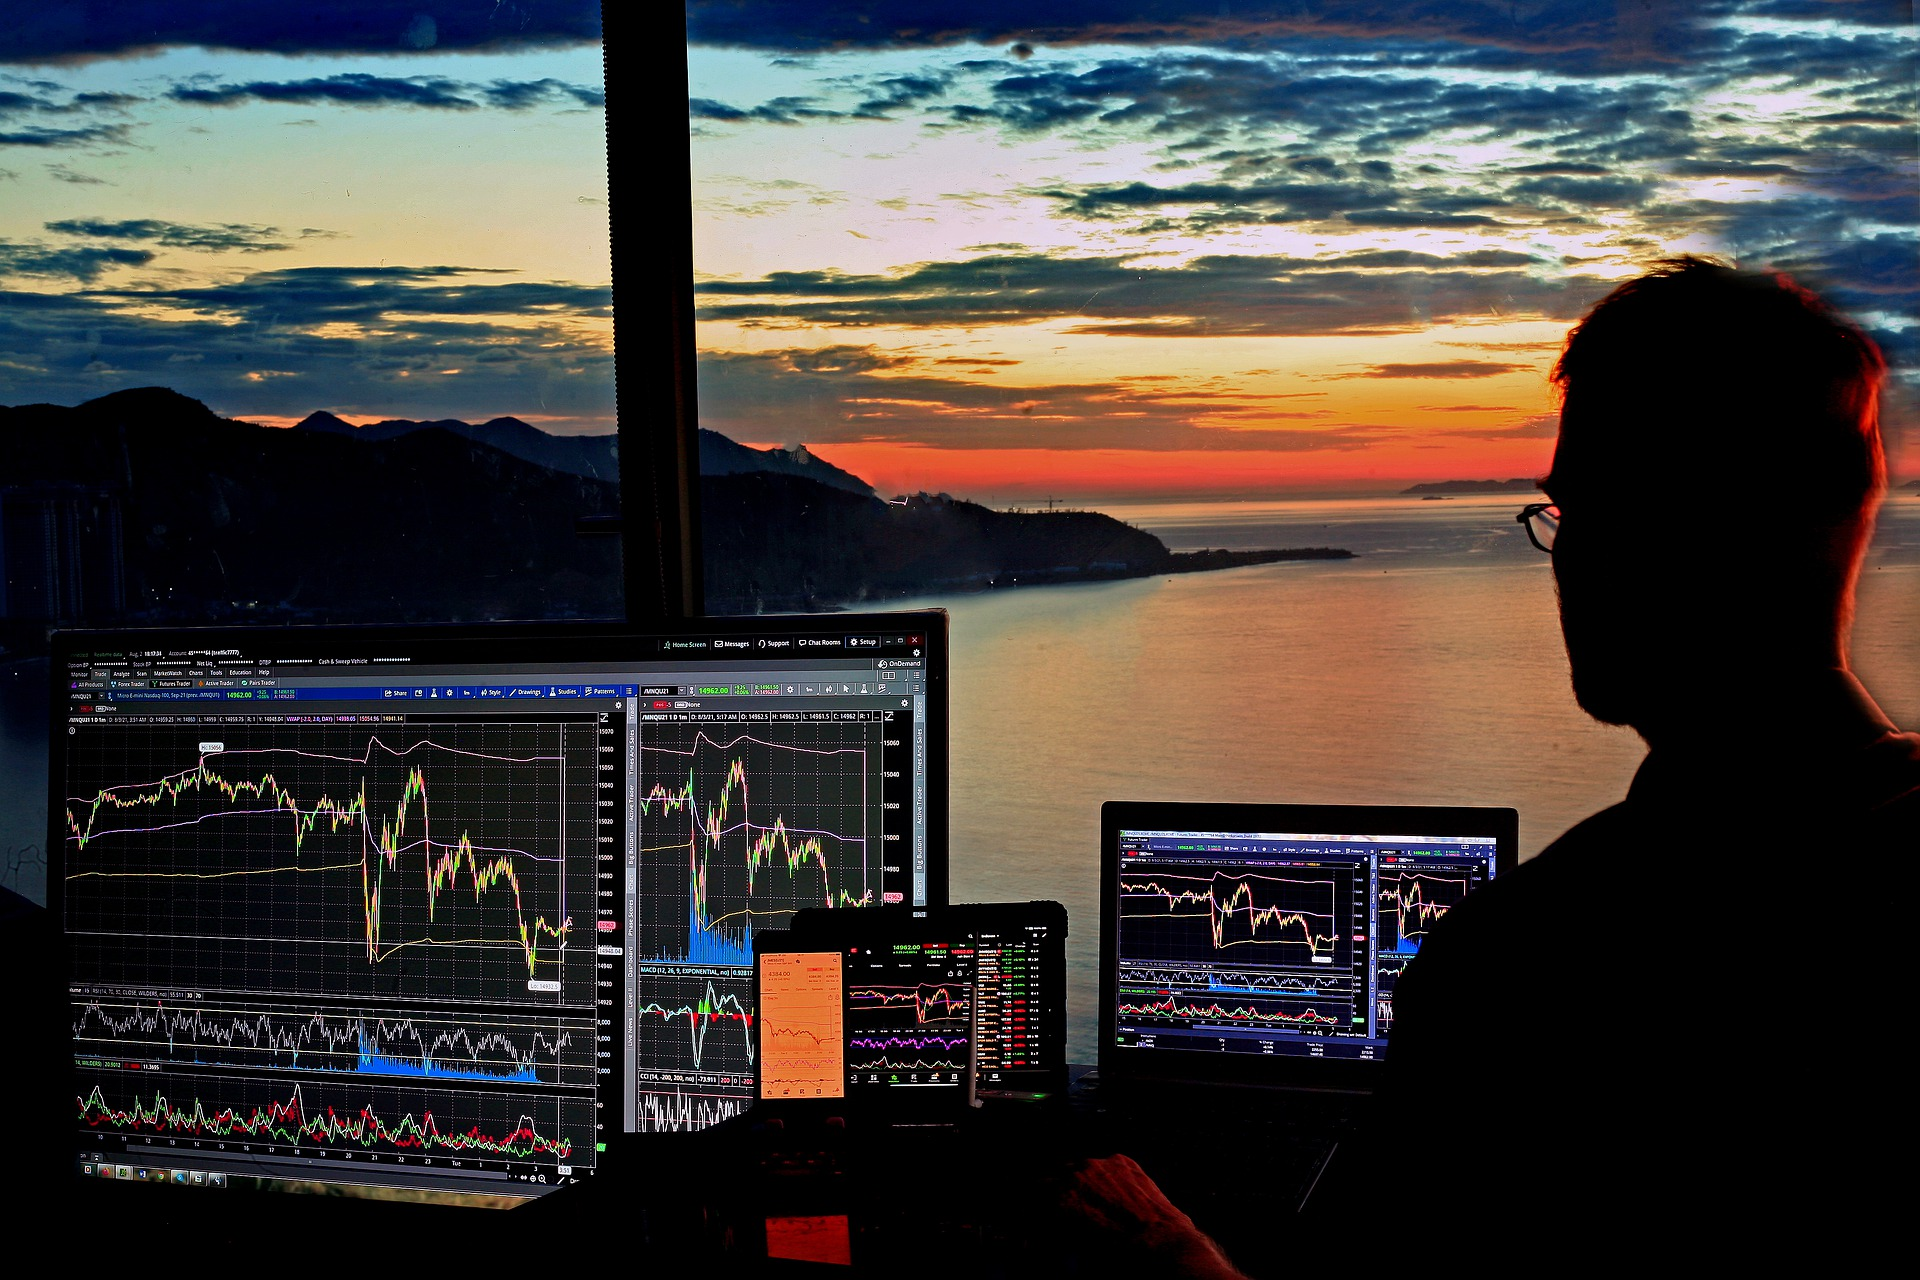 GlobalTrading26 Review – Top Reasons To Sign Up With This Broker